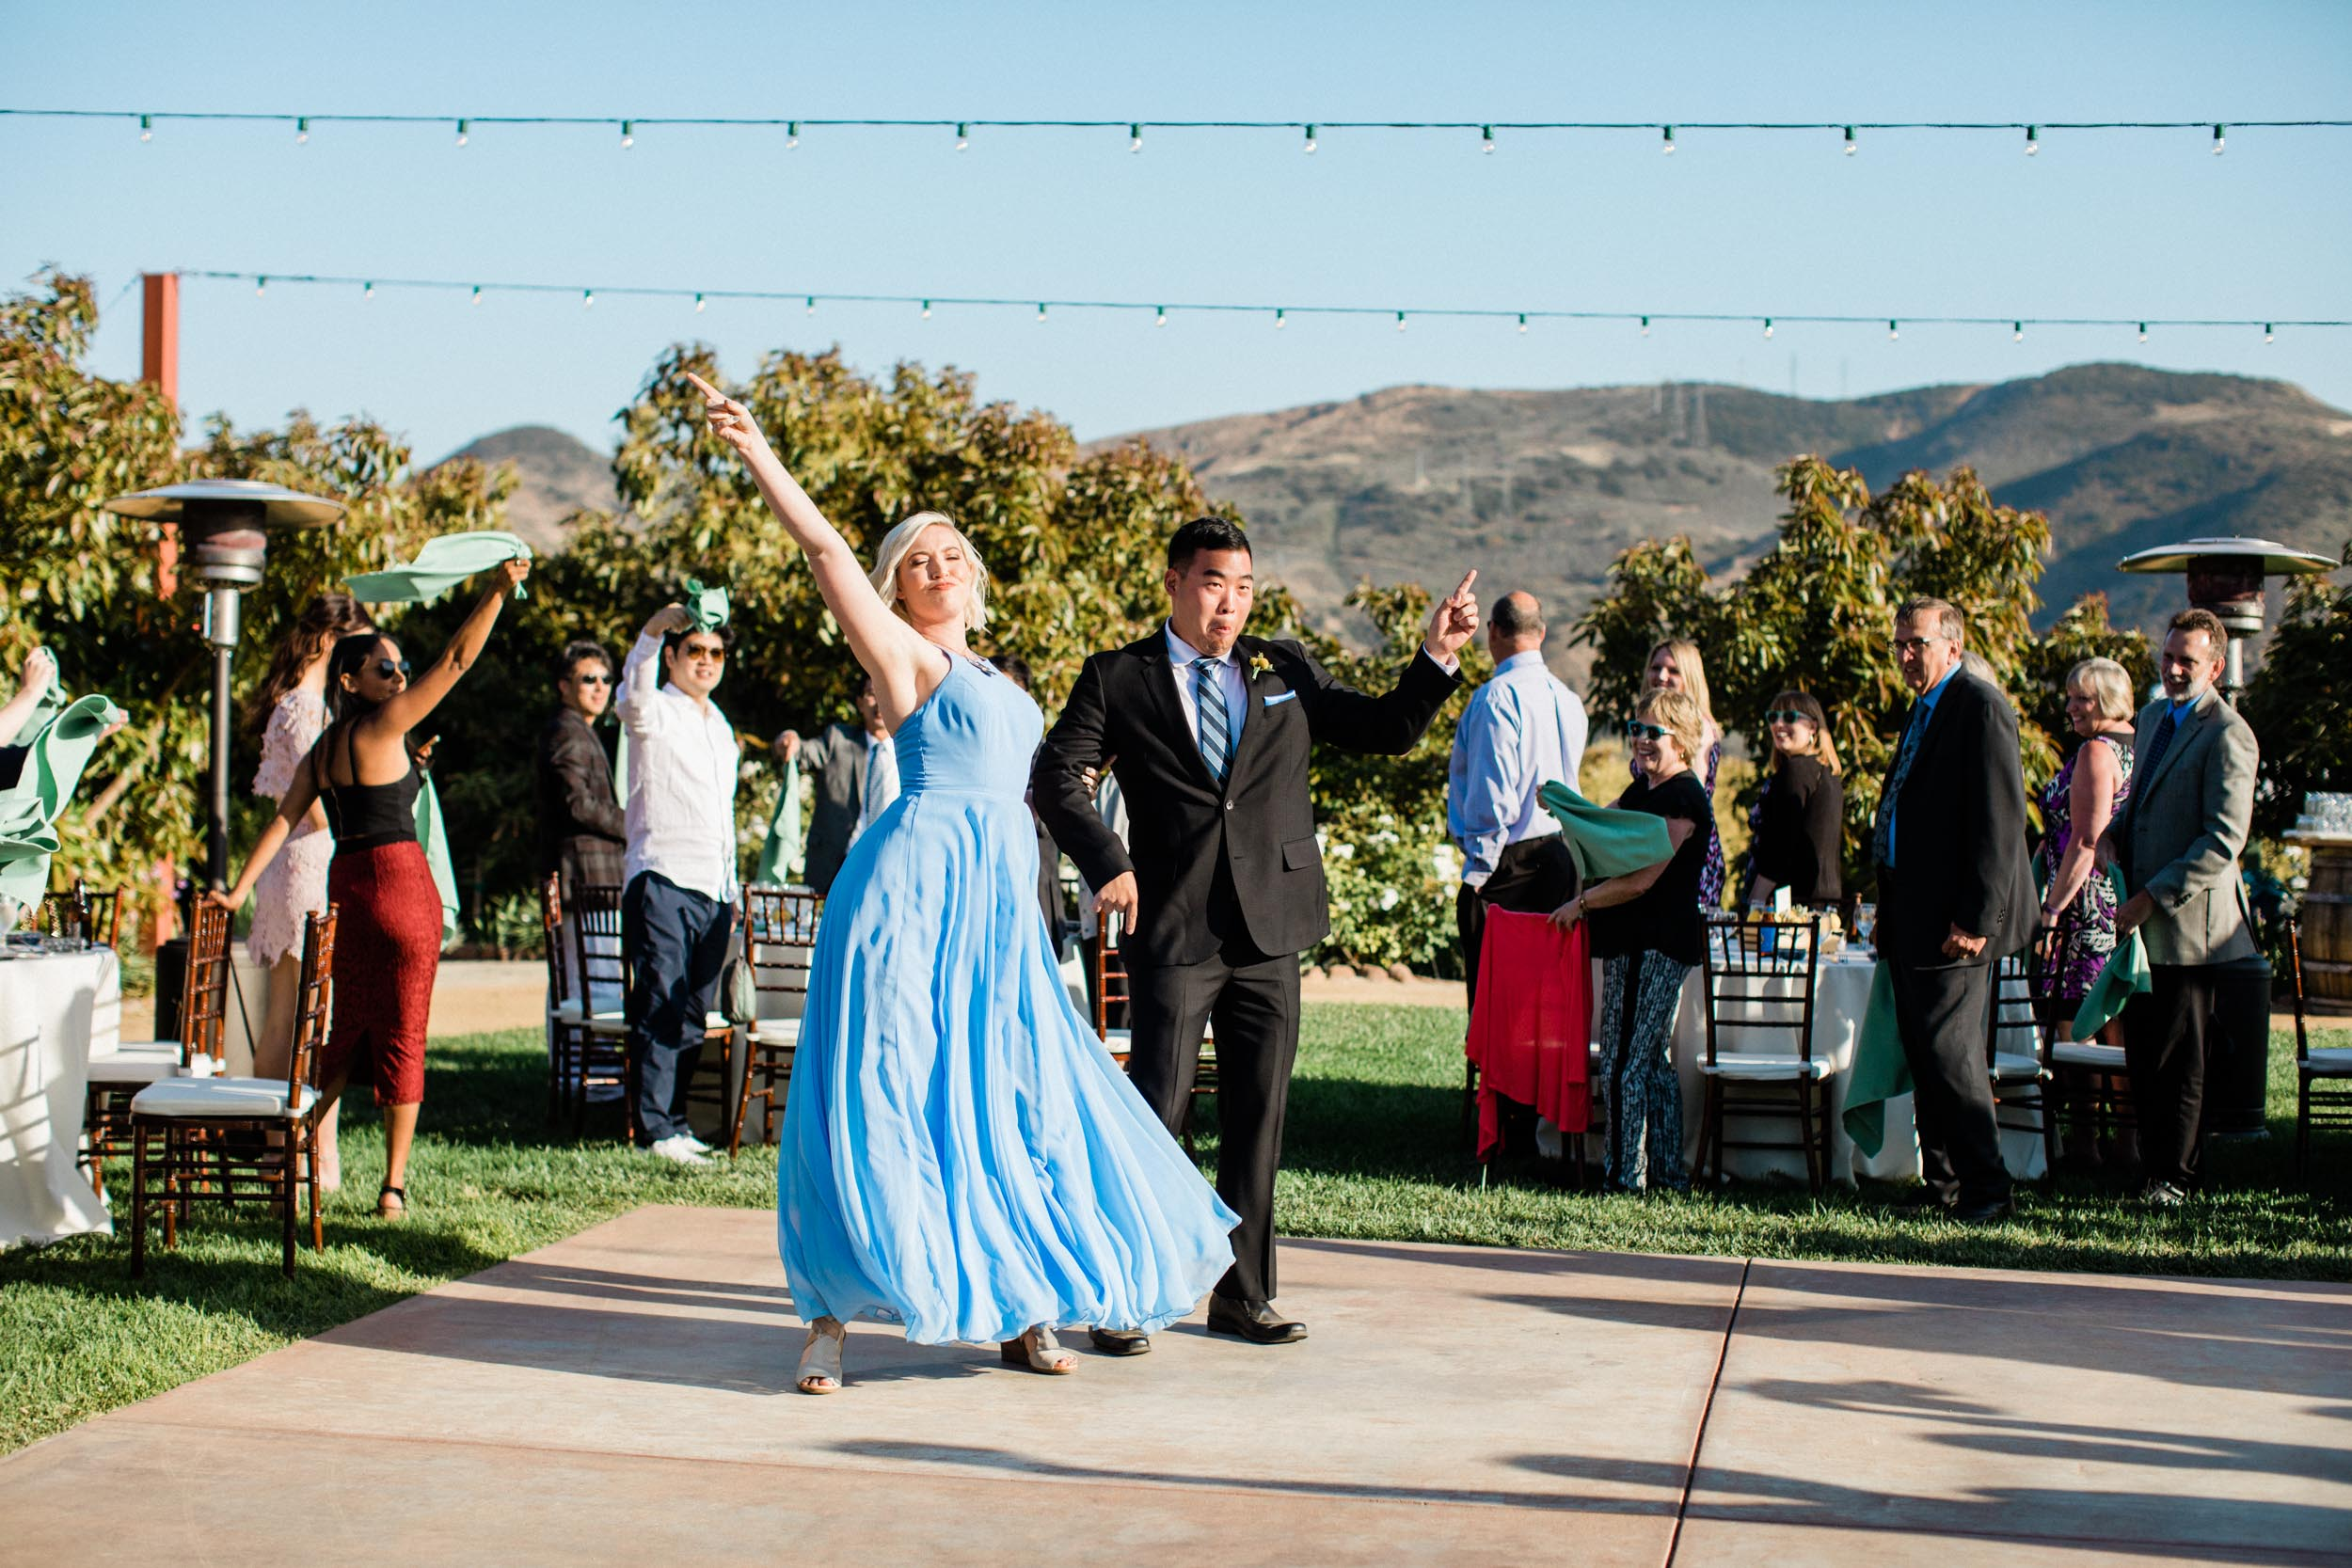 BKM-Photography-Gerry-Ranch-Southern-California-Wedding-0125.jpg